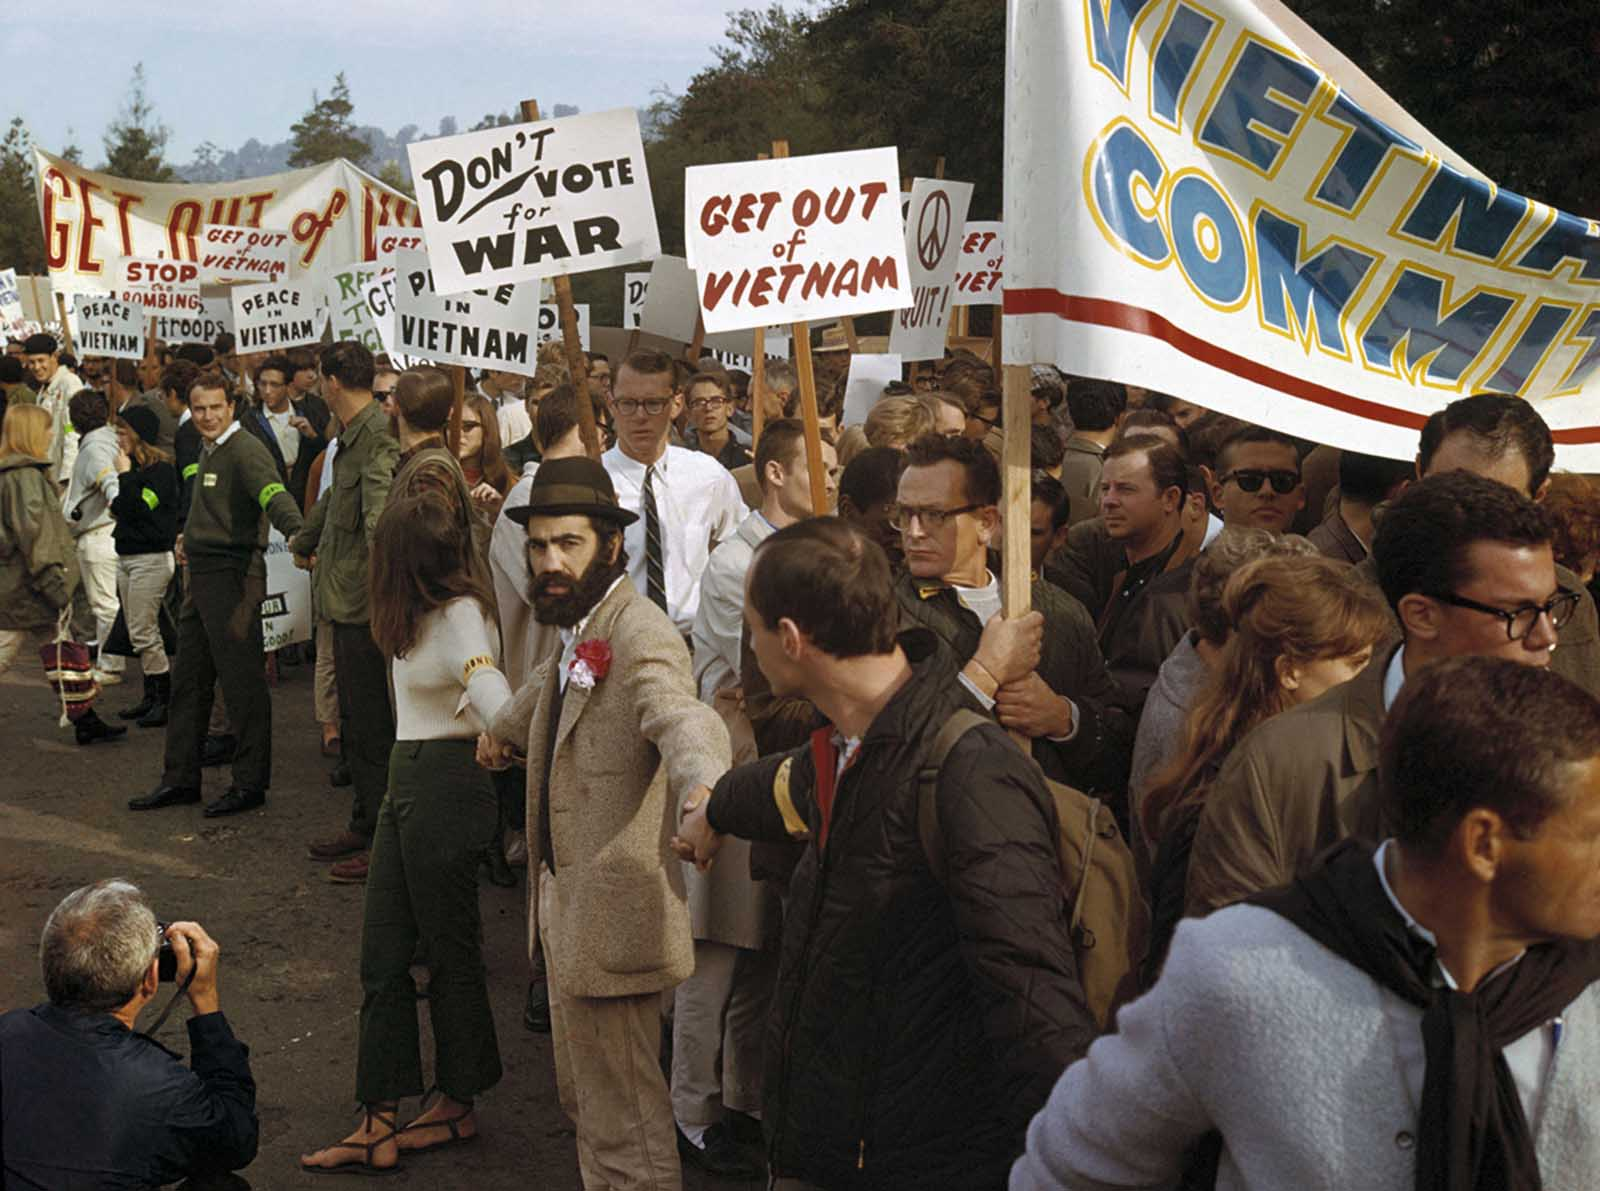 In Berkeley-Oakland City, California, demonstrators march against the war in Vietnam in December of 1965.